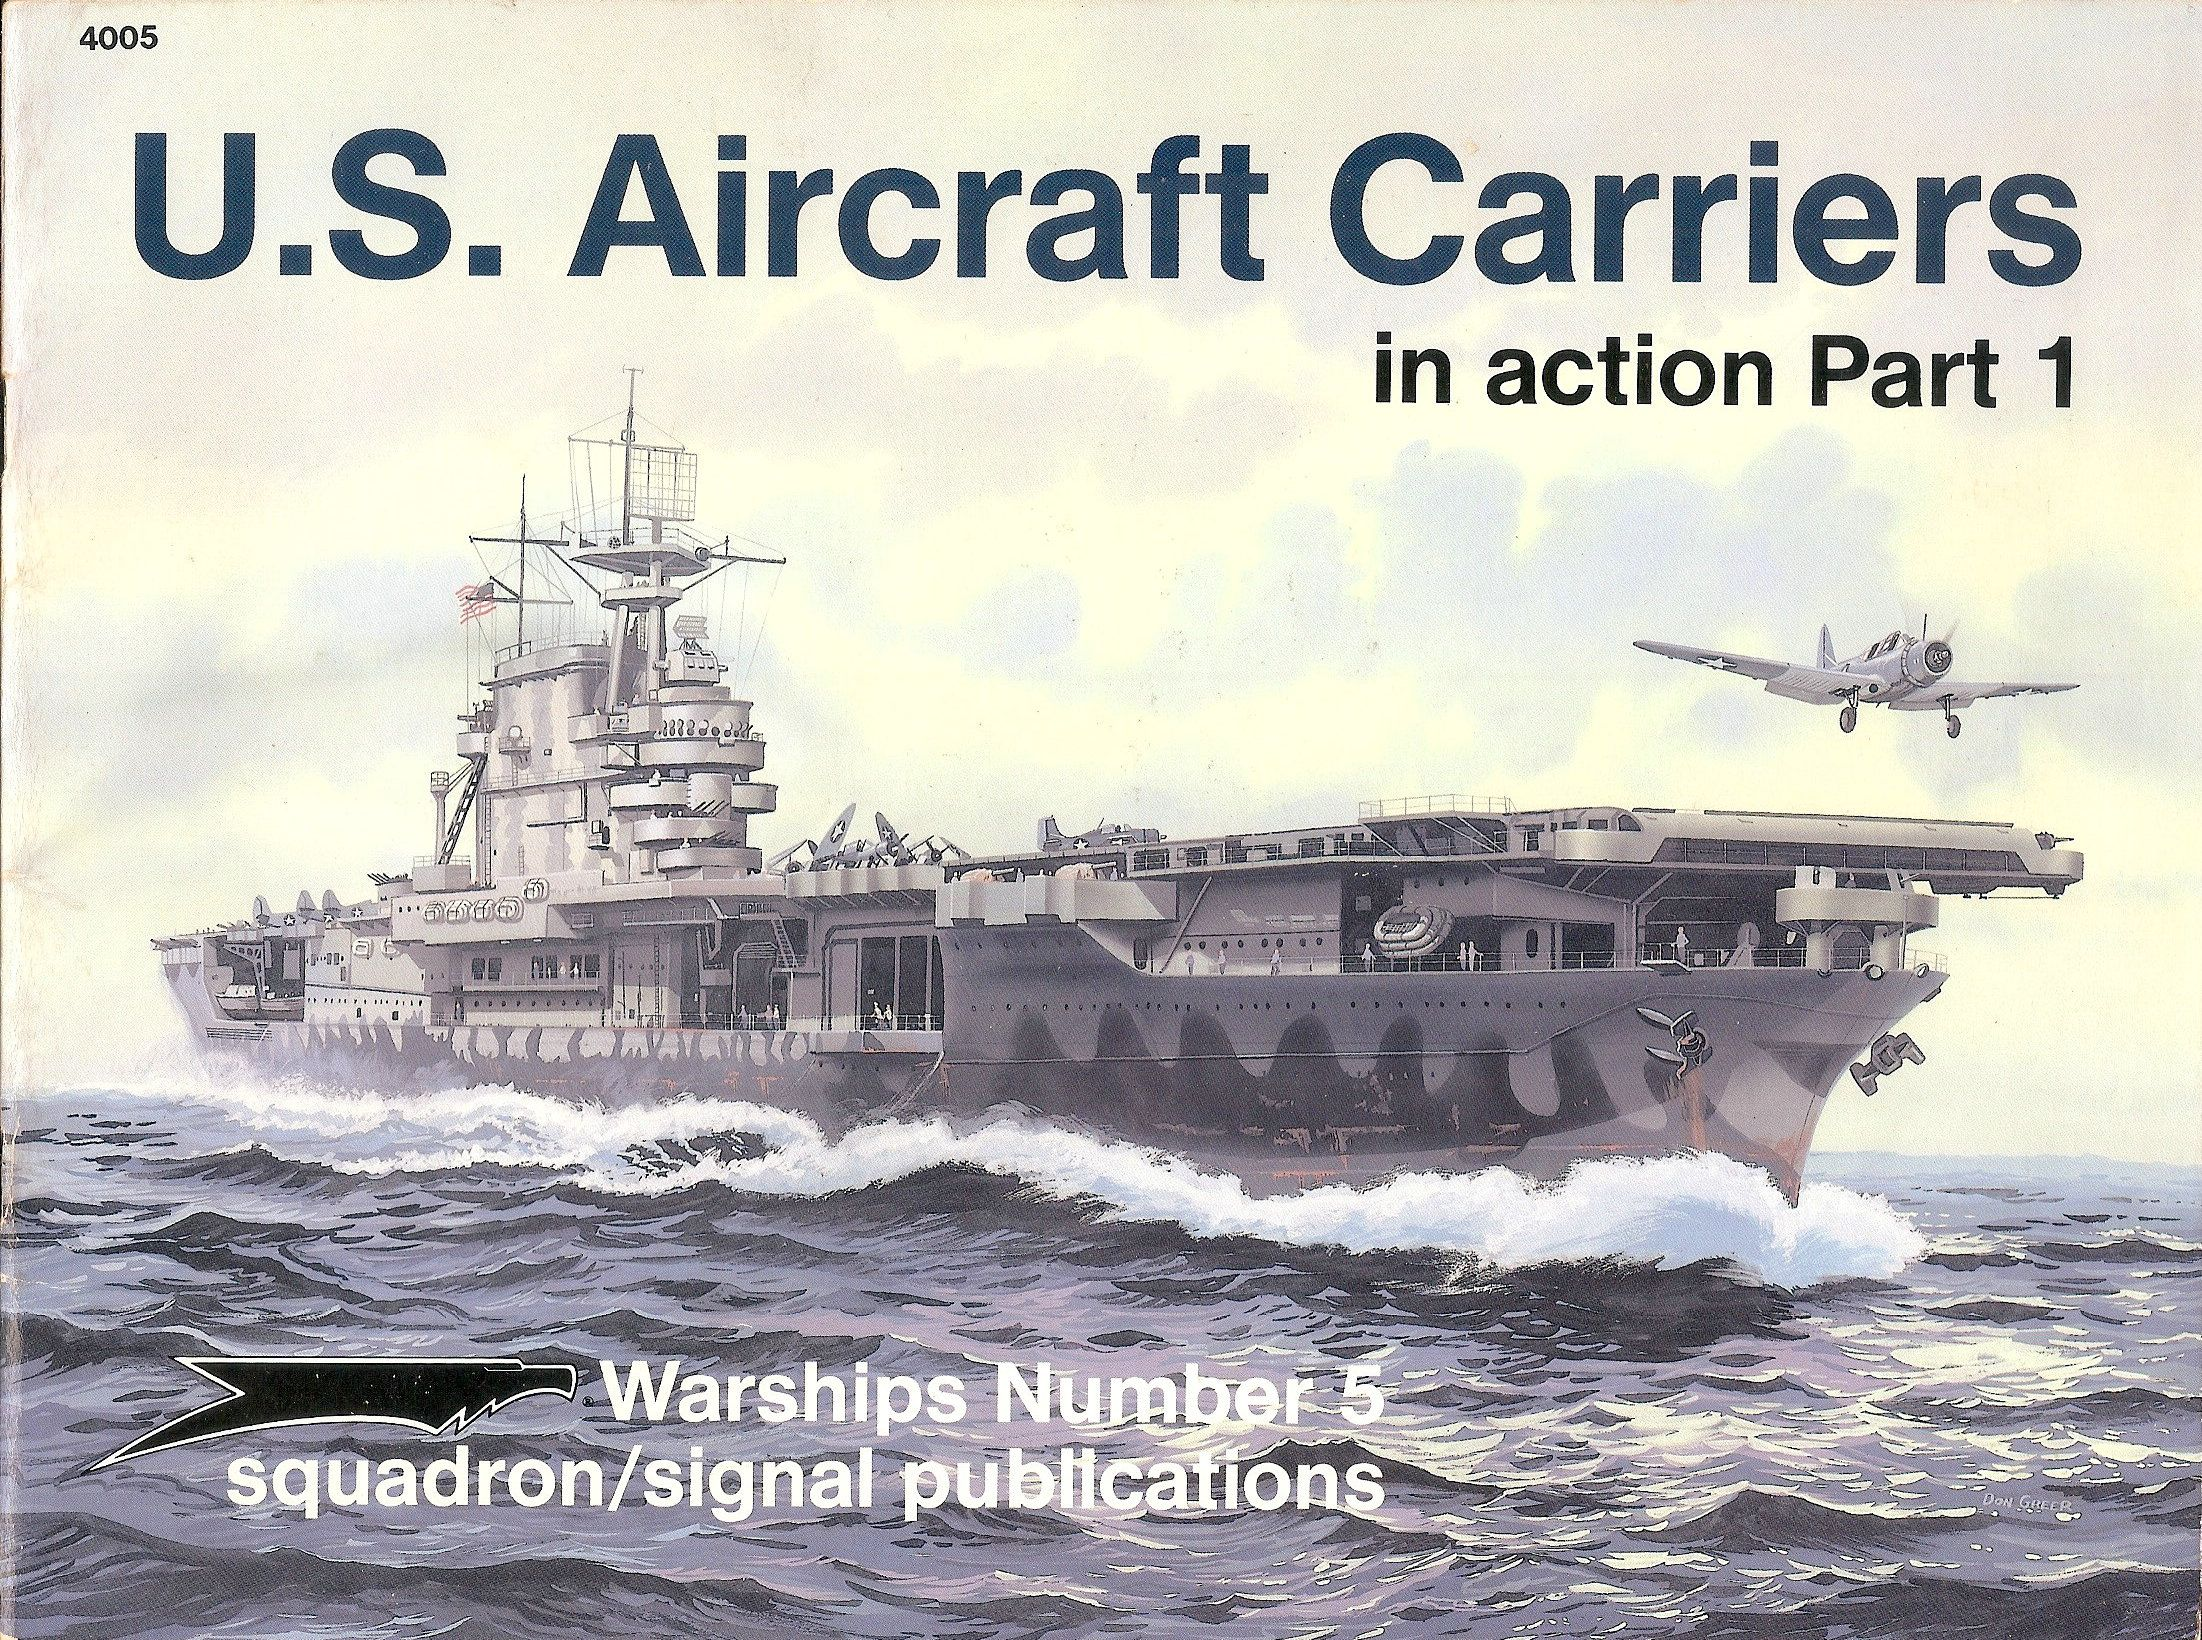 U.S. Aircraft Carriers in Action Part 1 - Warships Number 5, Squadron/Signal Publications